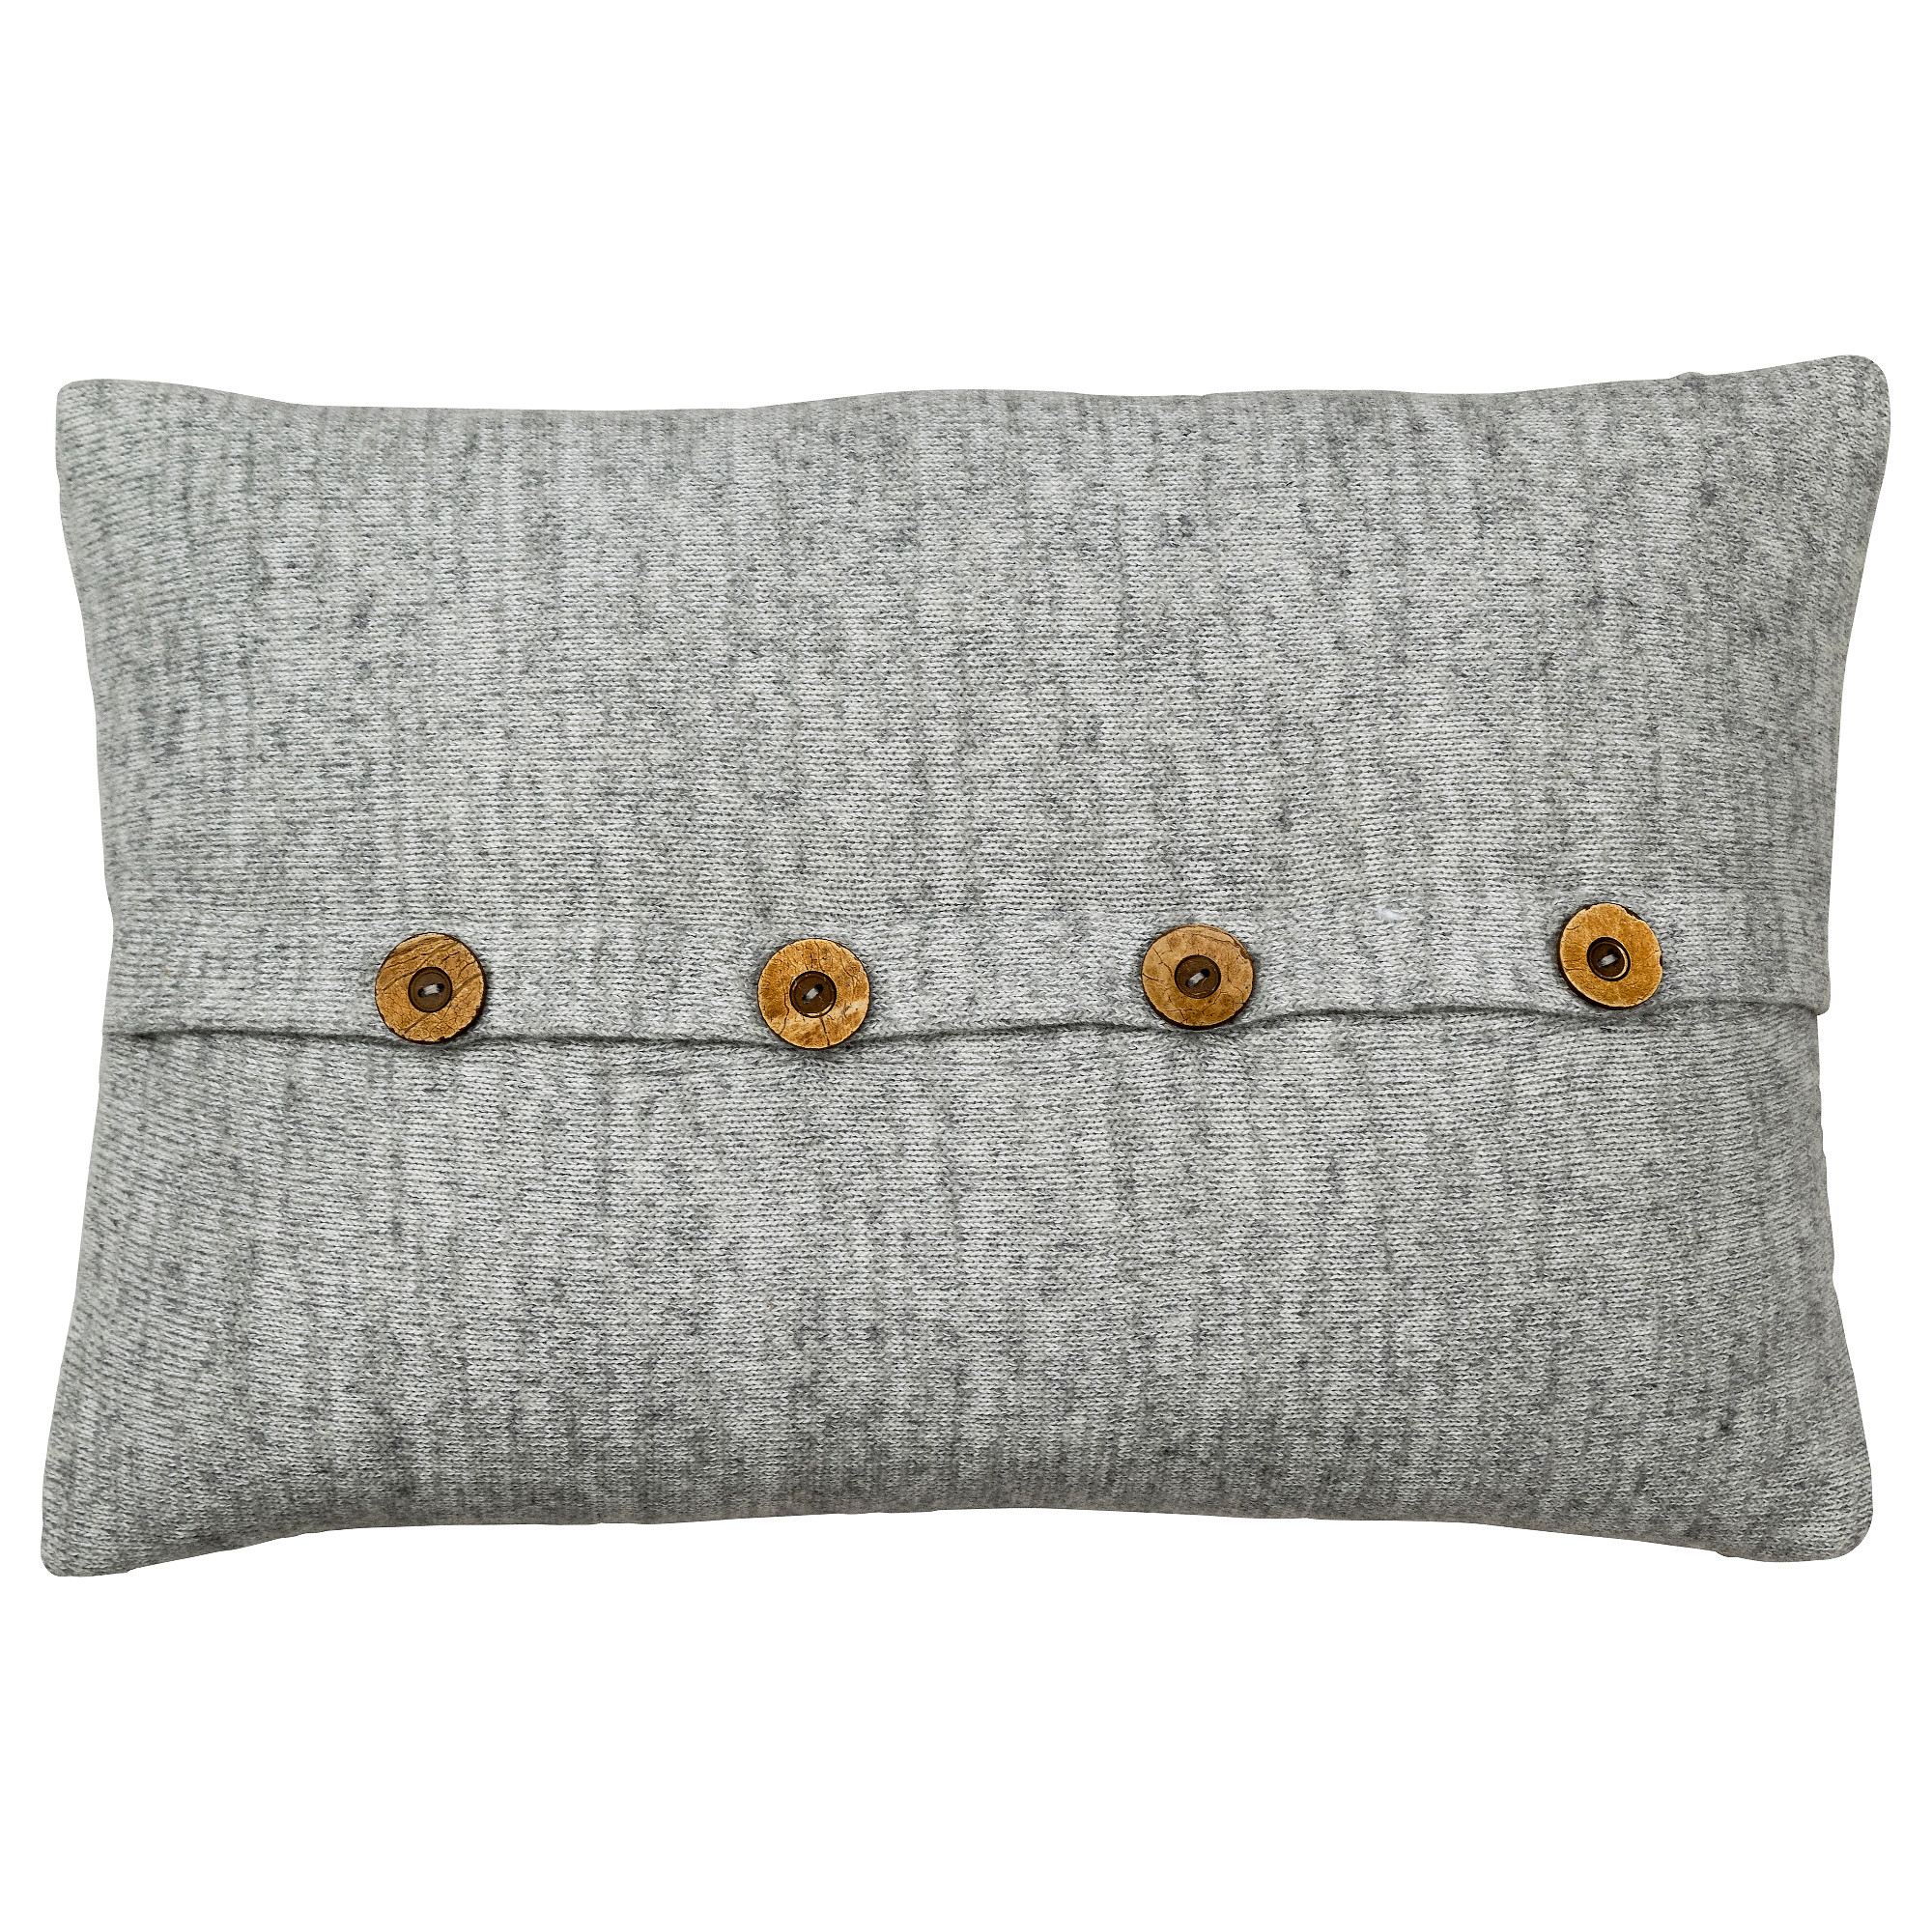 sofa cushions tveblad cushion, dark gray length: 16  VEKDURB